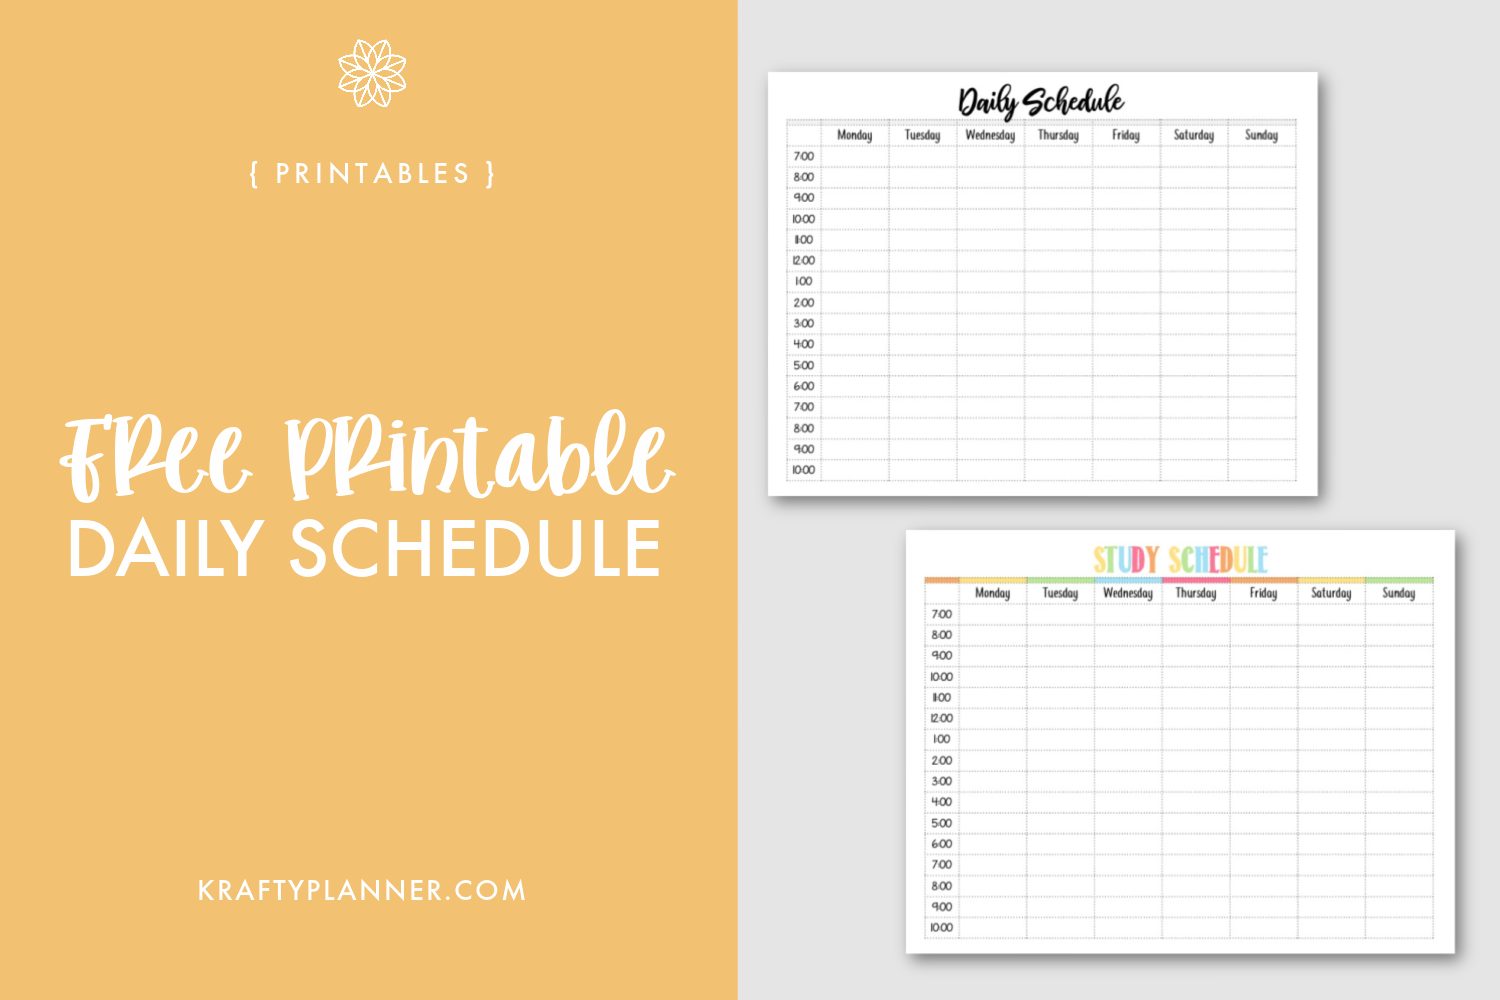 Free Printable Daily Schedule Main Image